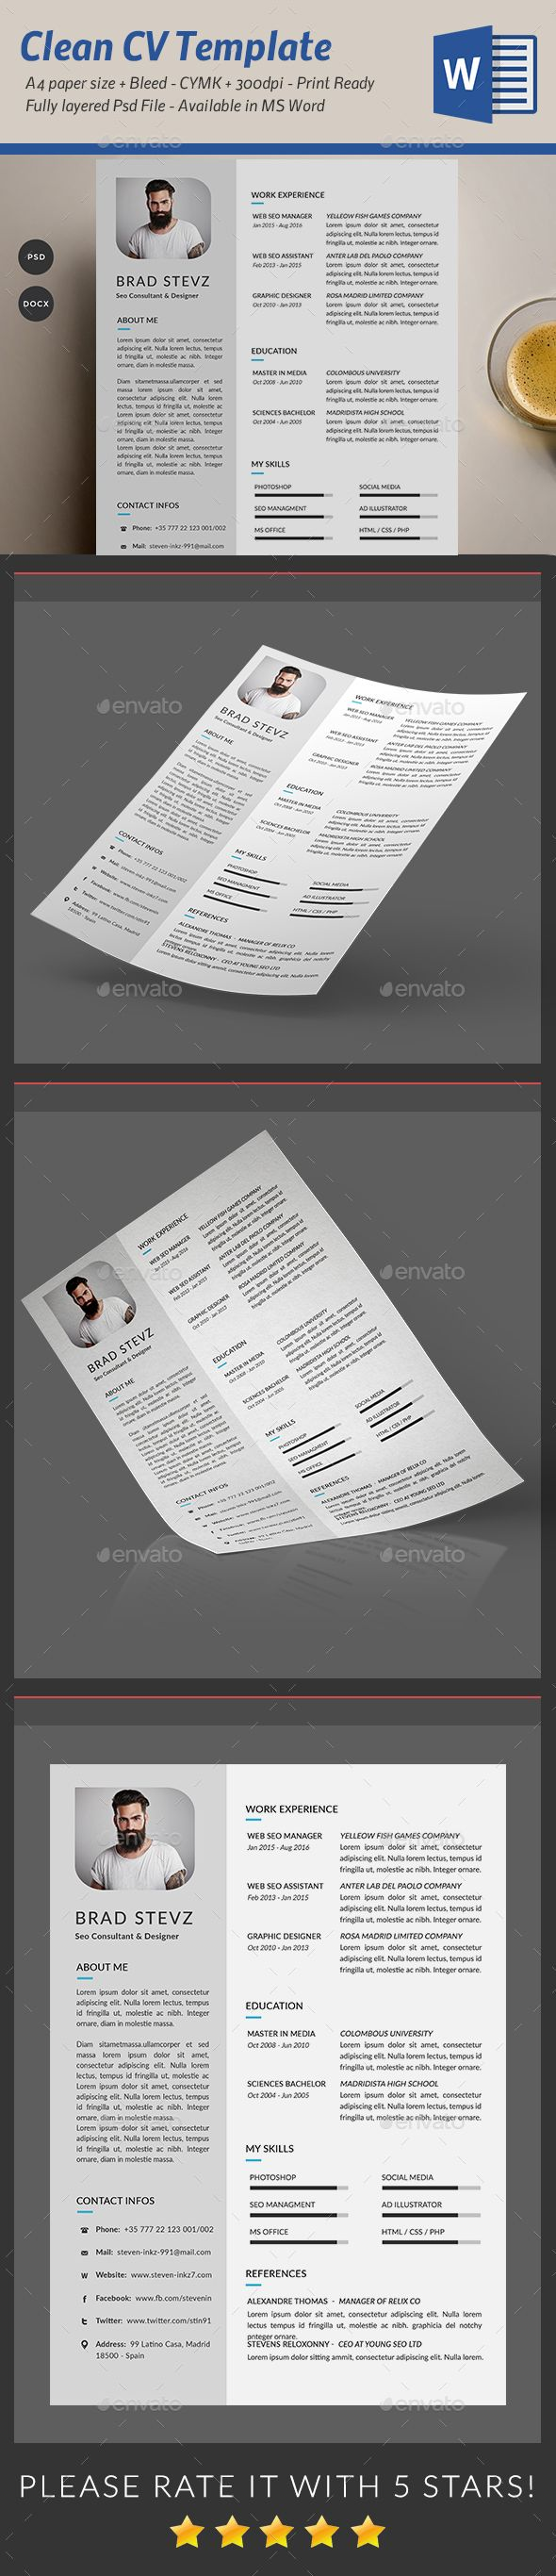 Resume Template For High School Student With No Work Experience%0A Cv